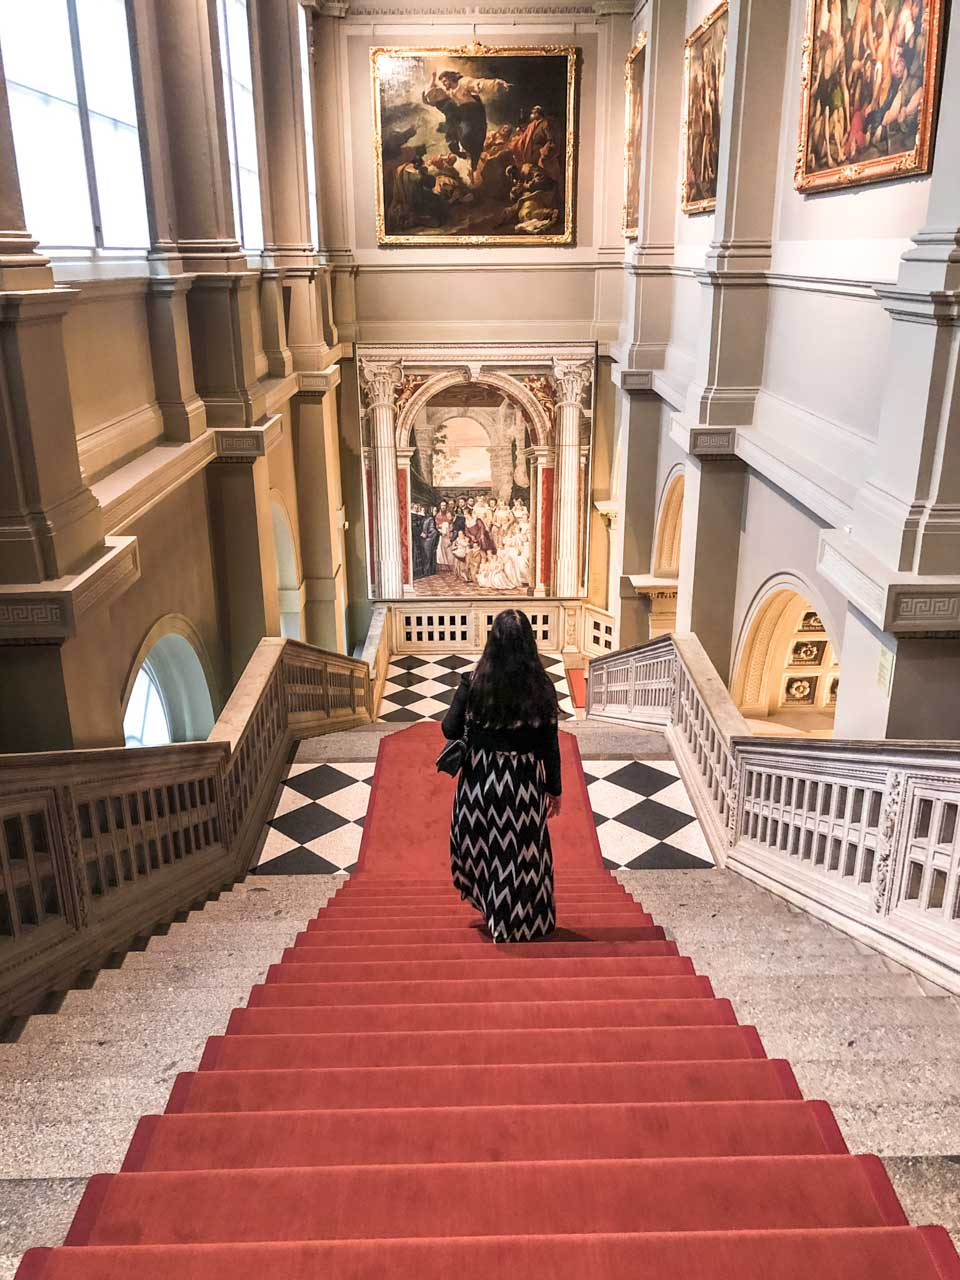 A girl in a maxi dress walking down the stairs inside the Old Masters Picture Gallery (Gemäldegalerie Alte Meister) in Dresden, Germany